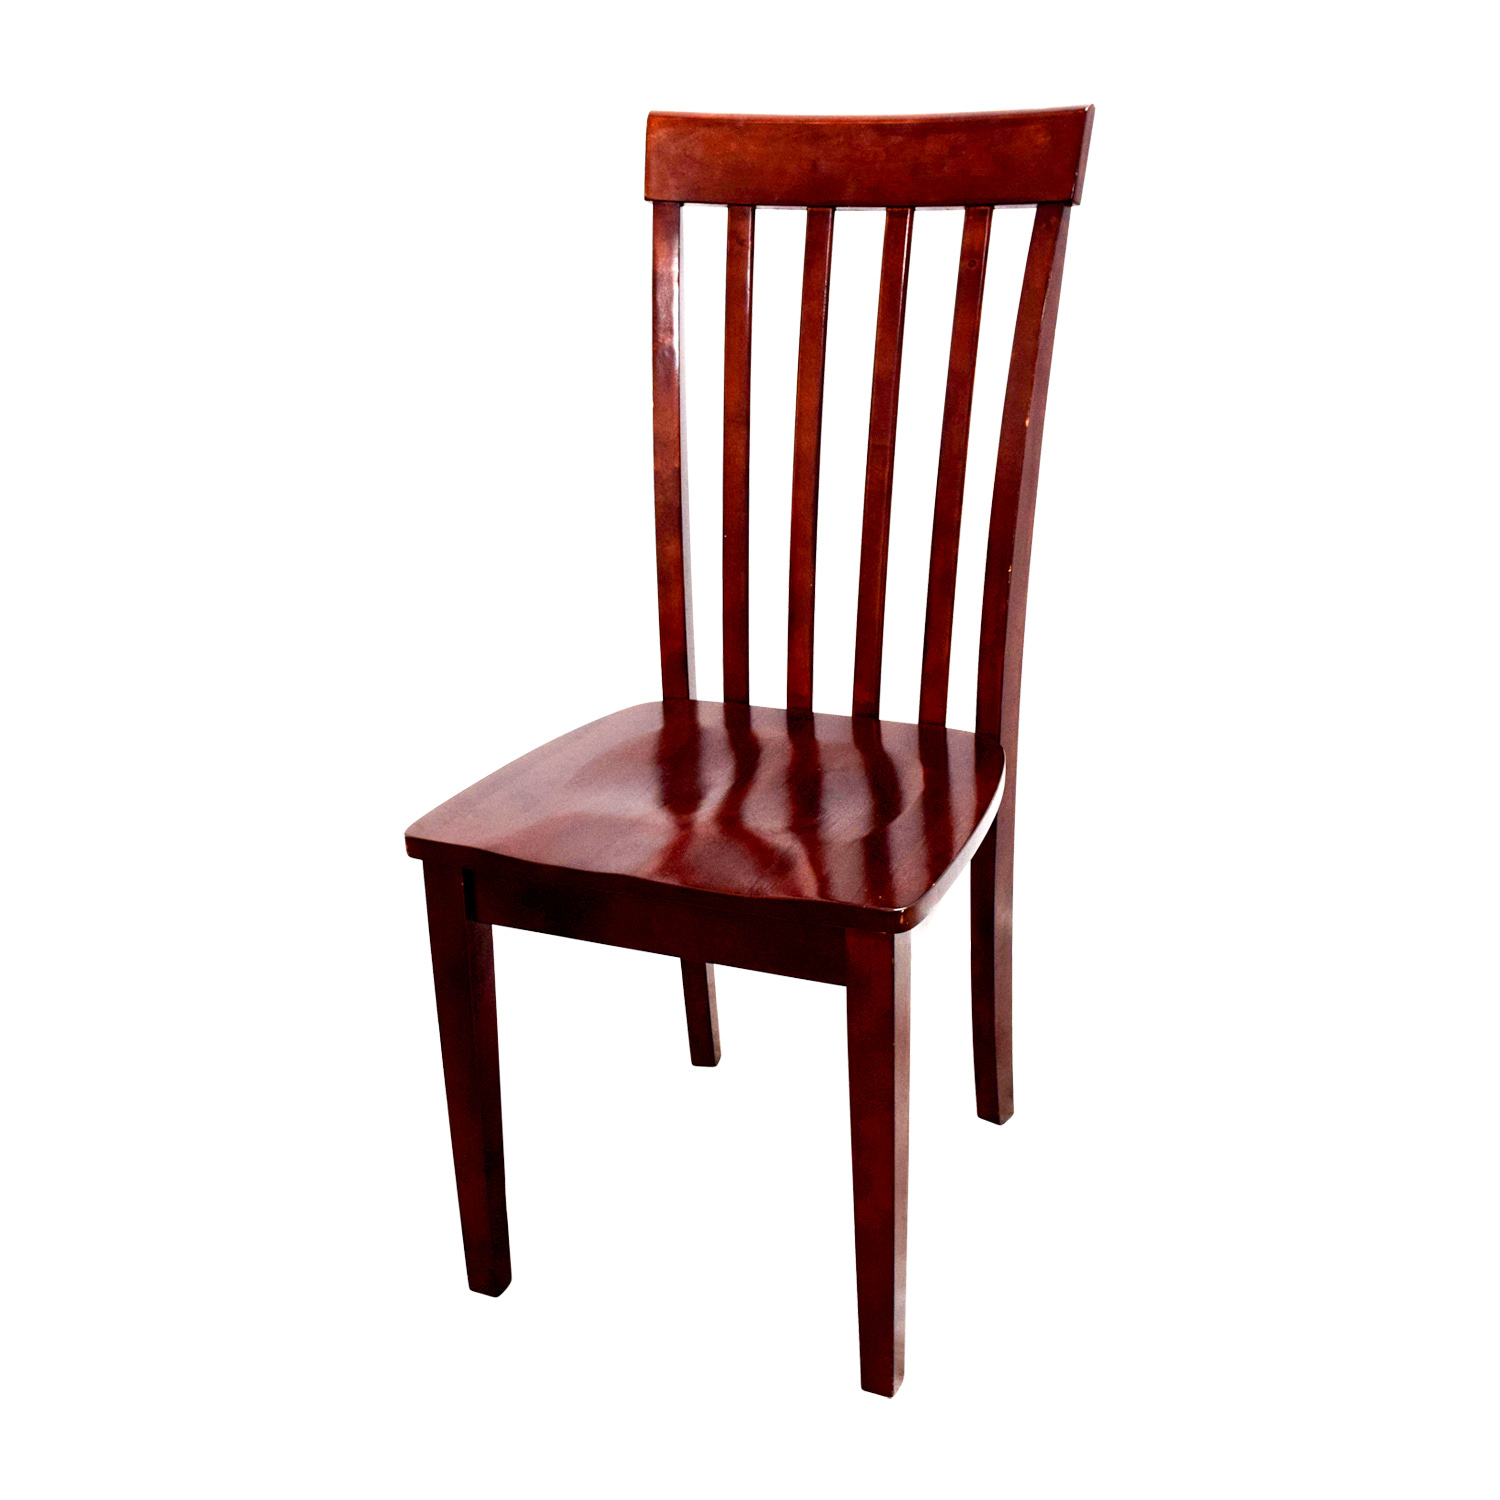 Room And Board Dining Chairs: Bob's Furniture Bob's Furniture Dining Room